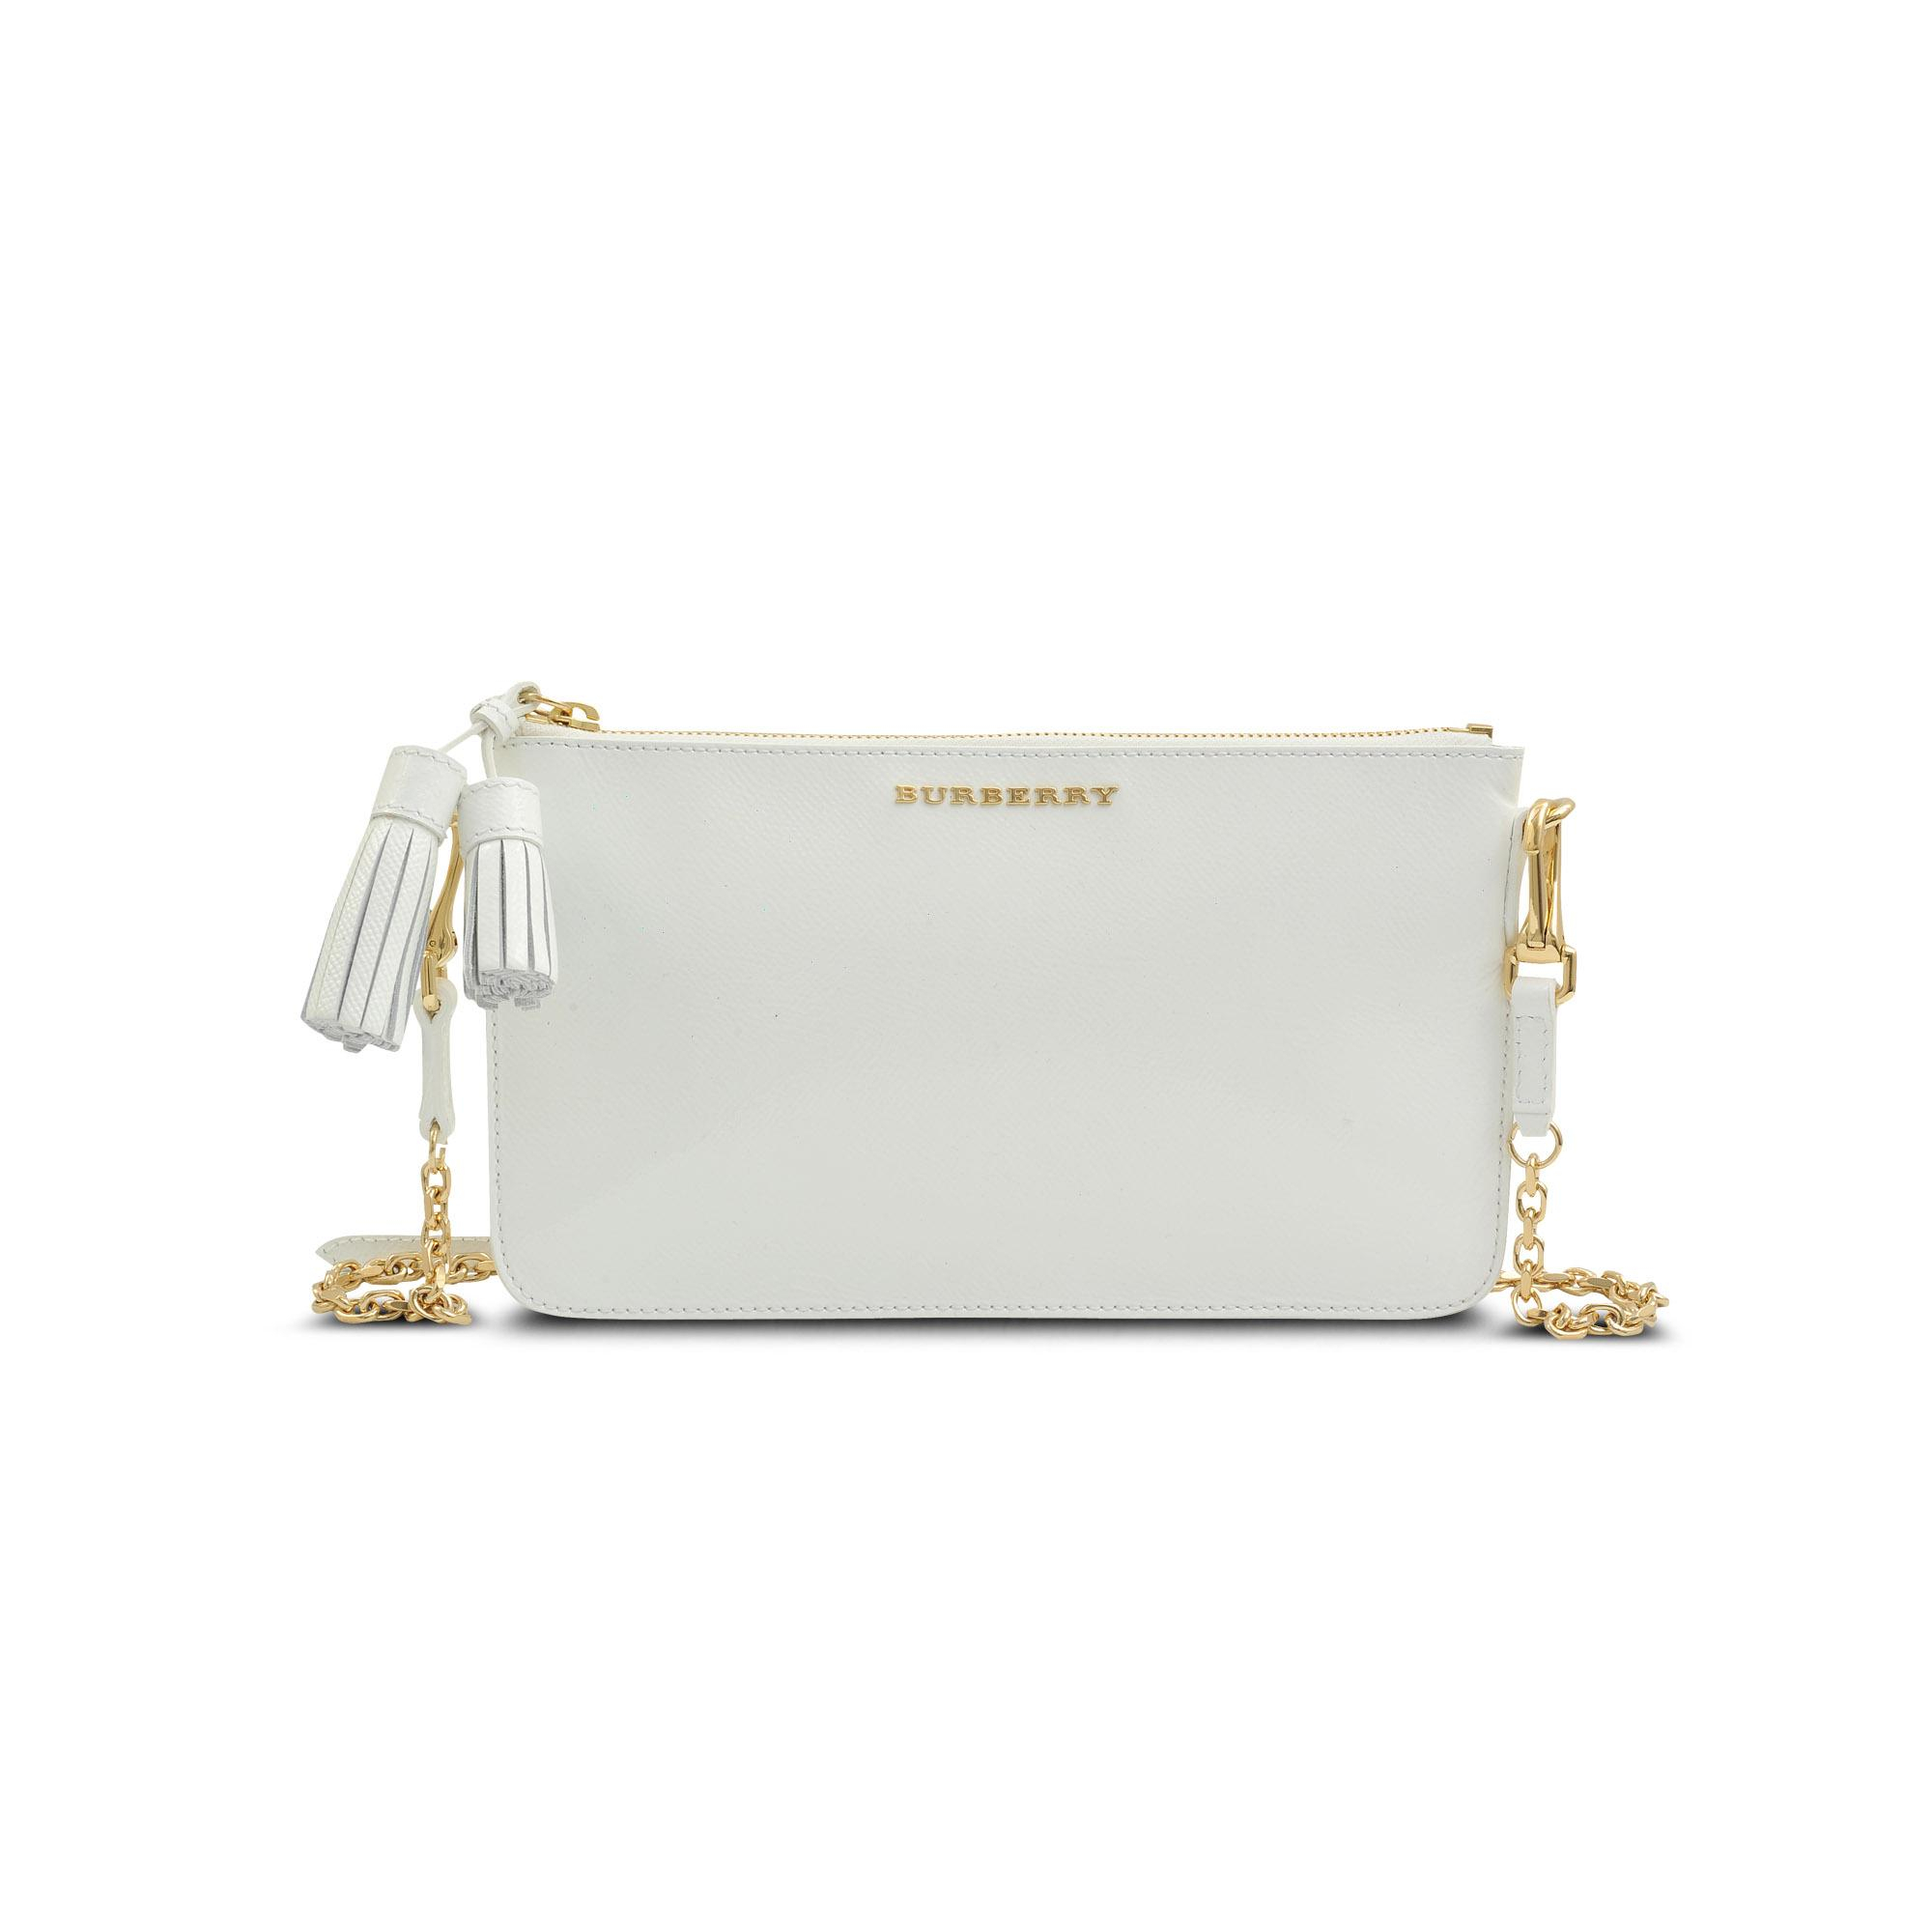 Burberry Peyton Clutch in White - Lyst a959e6d024732